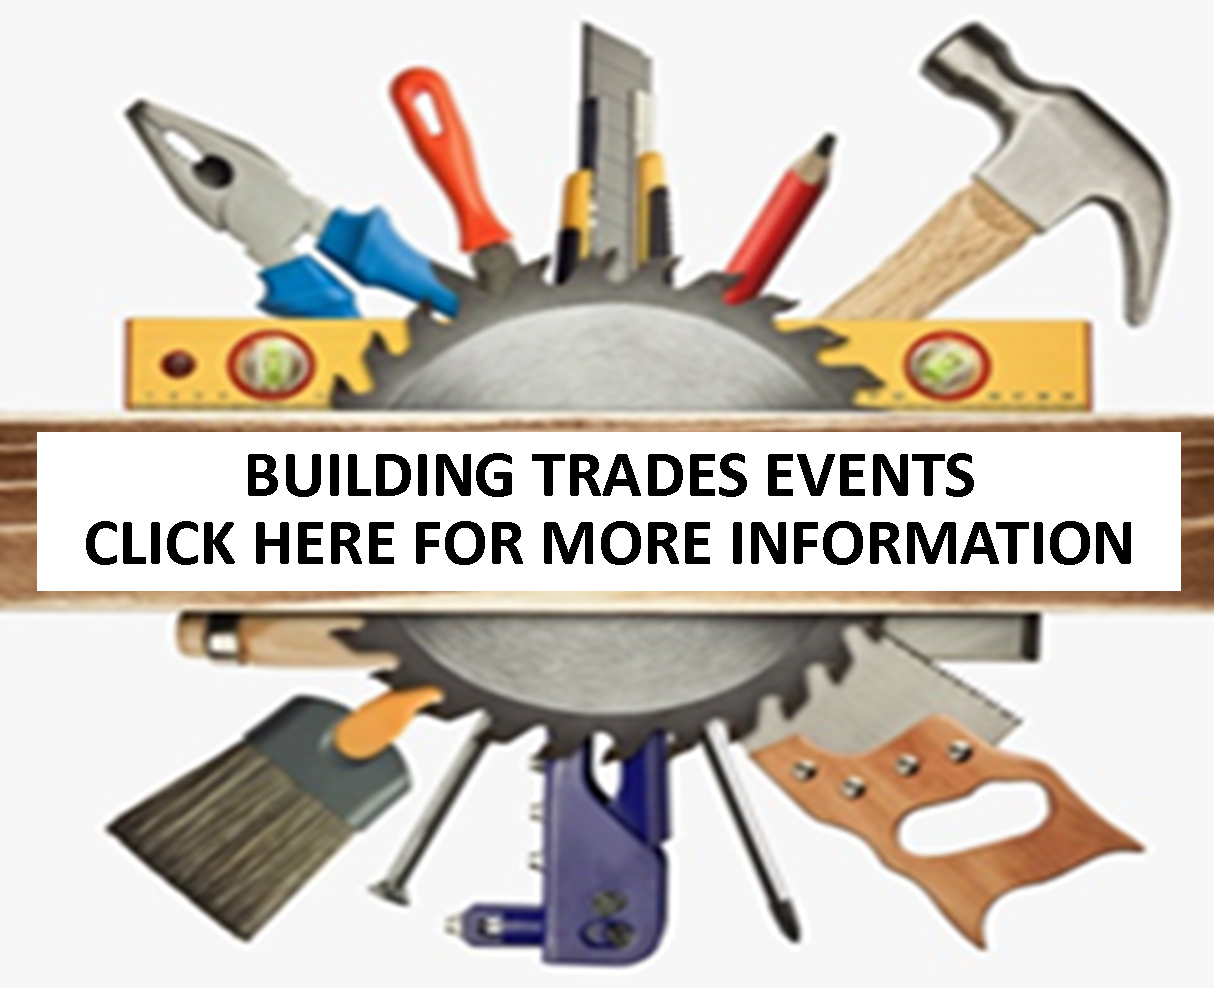 Building-Trades-for-website-ad.png